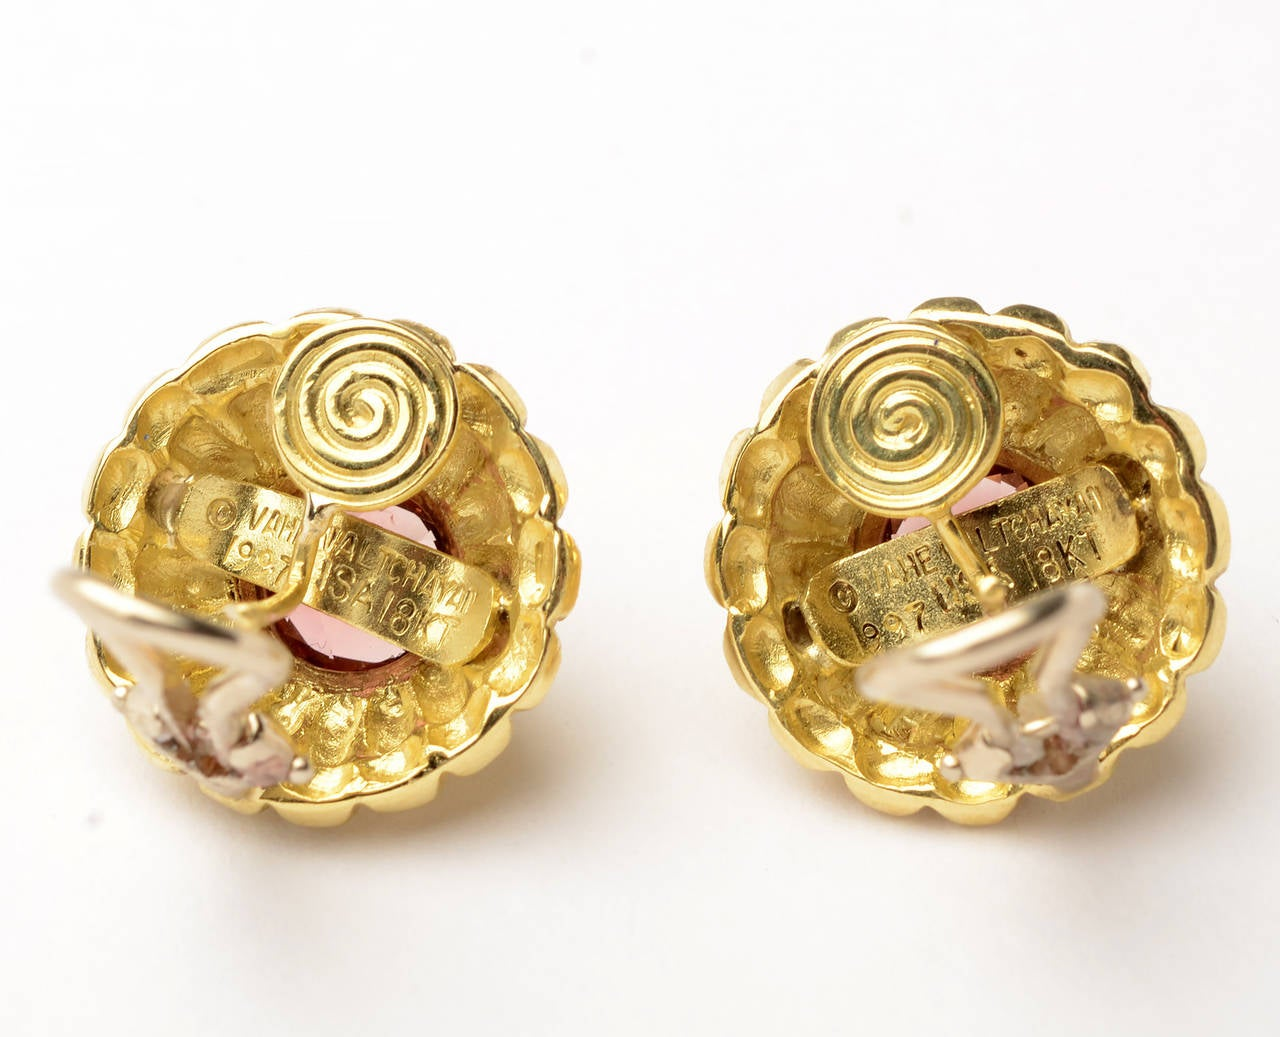 Tiered scallop design earrings centered with tourmaline  by Vahe Naltchayan. They are 18 karat gold with 14 karat white gold omega backs. They measure 5/8